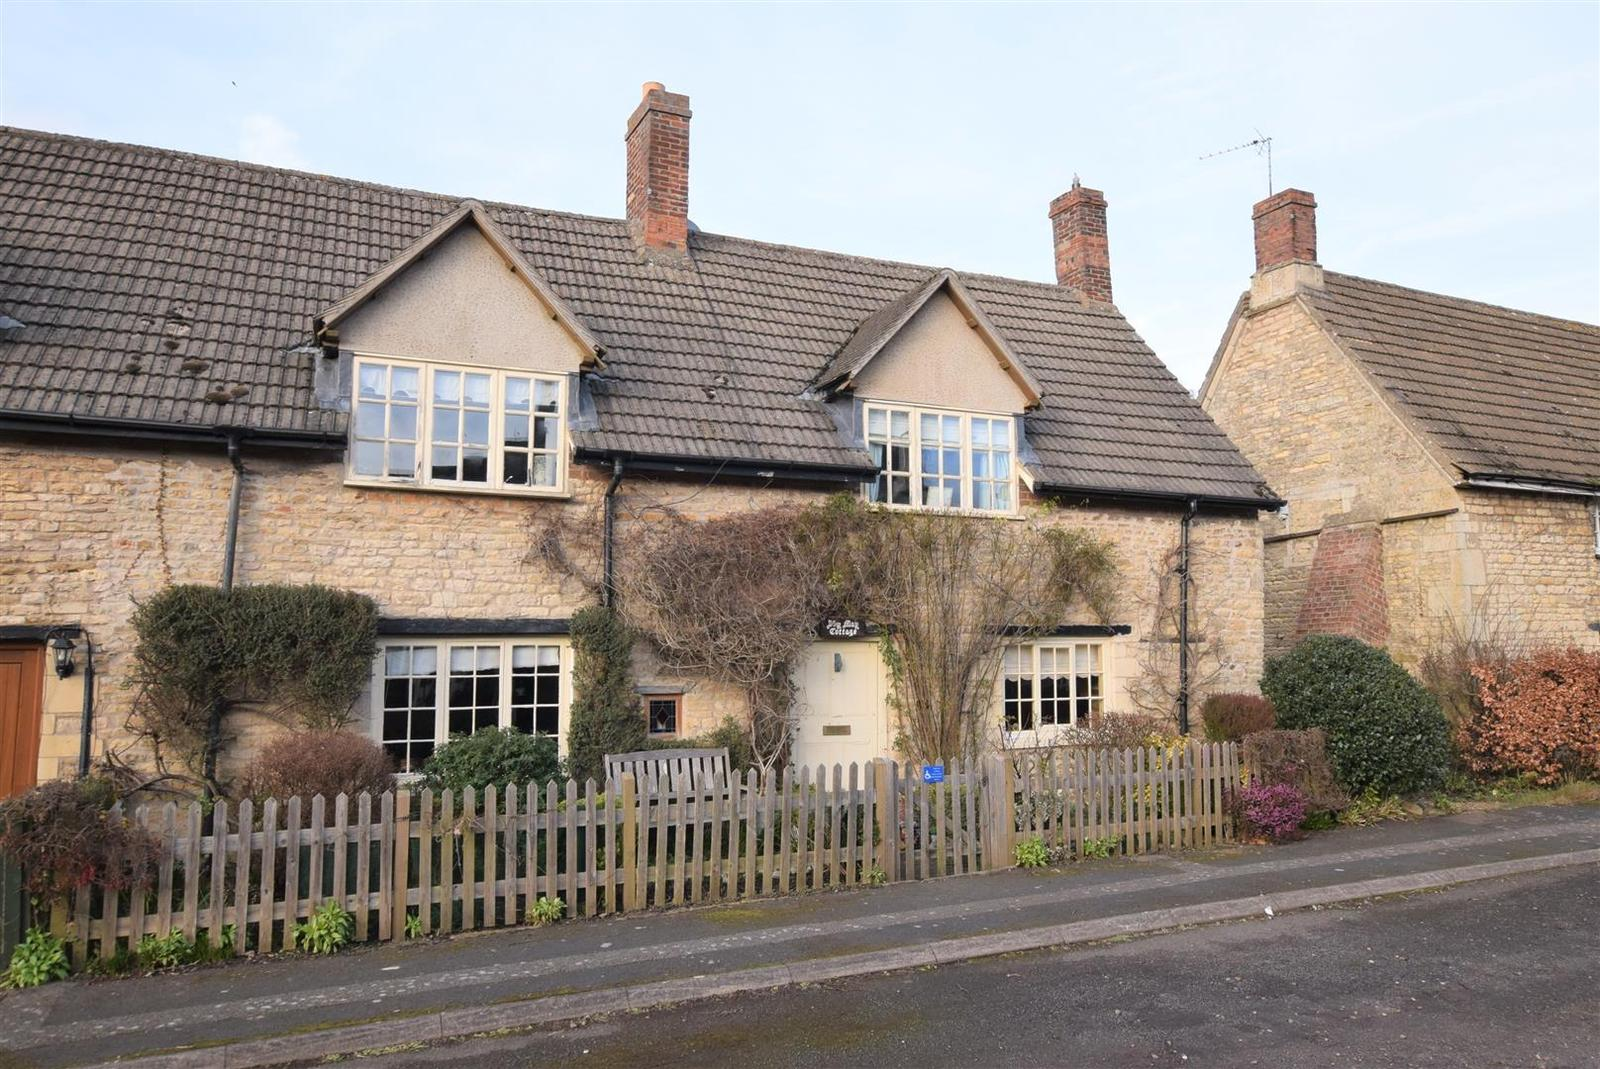 2 Bedrooms Property for sale in Well Cross, Edith Weston